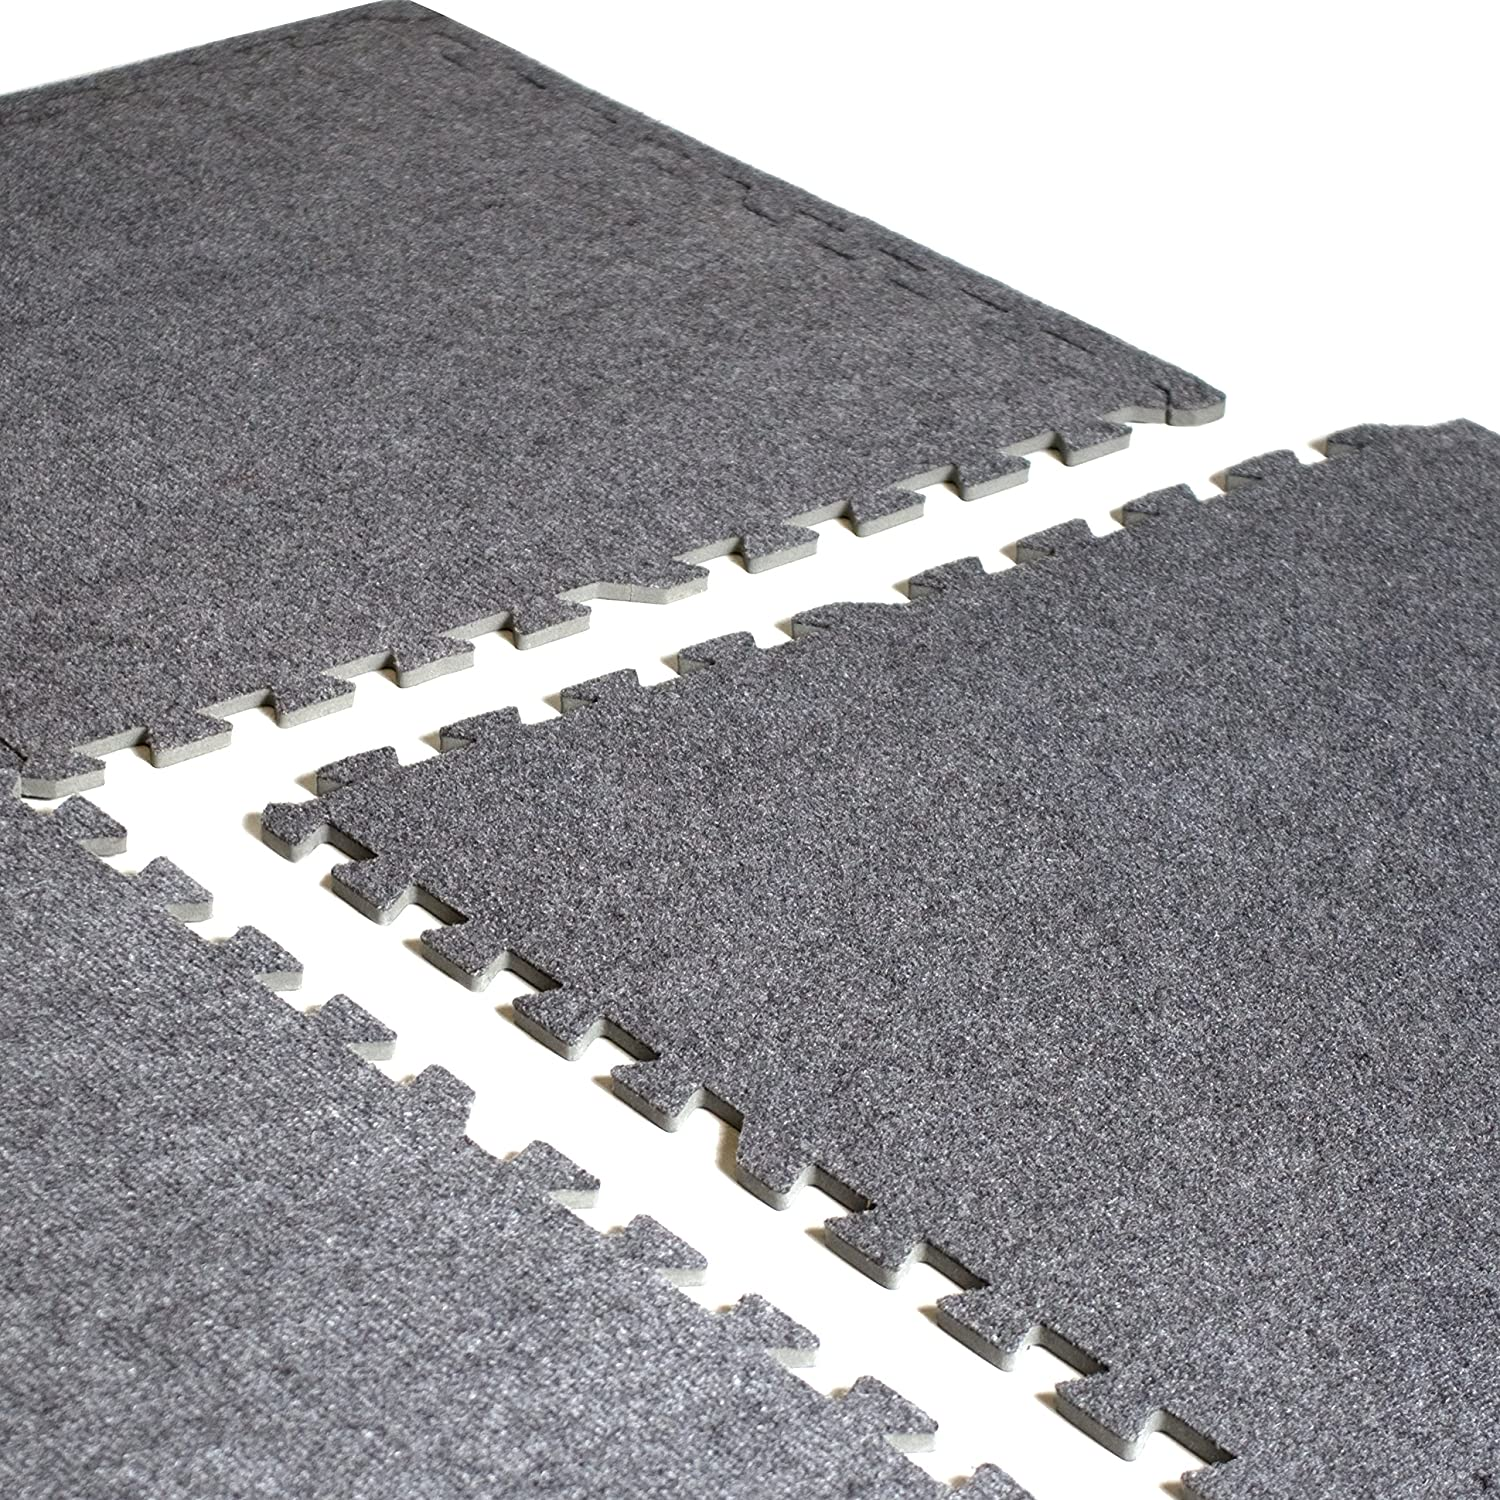 mat floor mats for thickness rubber flooring gym